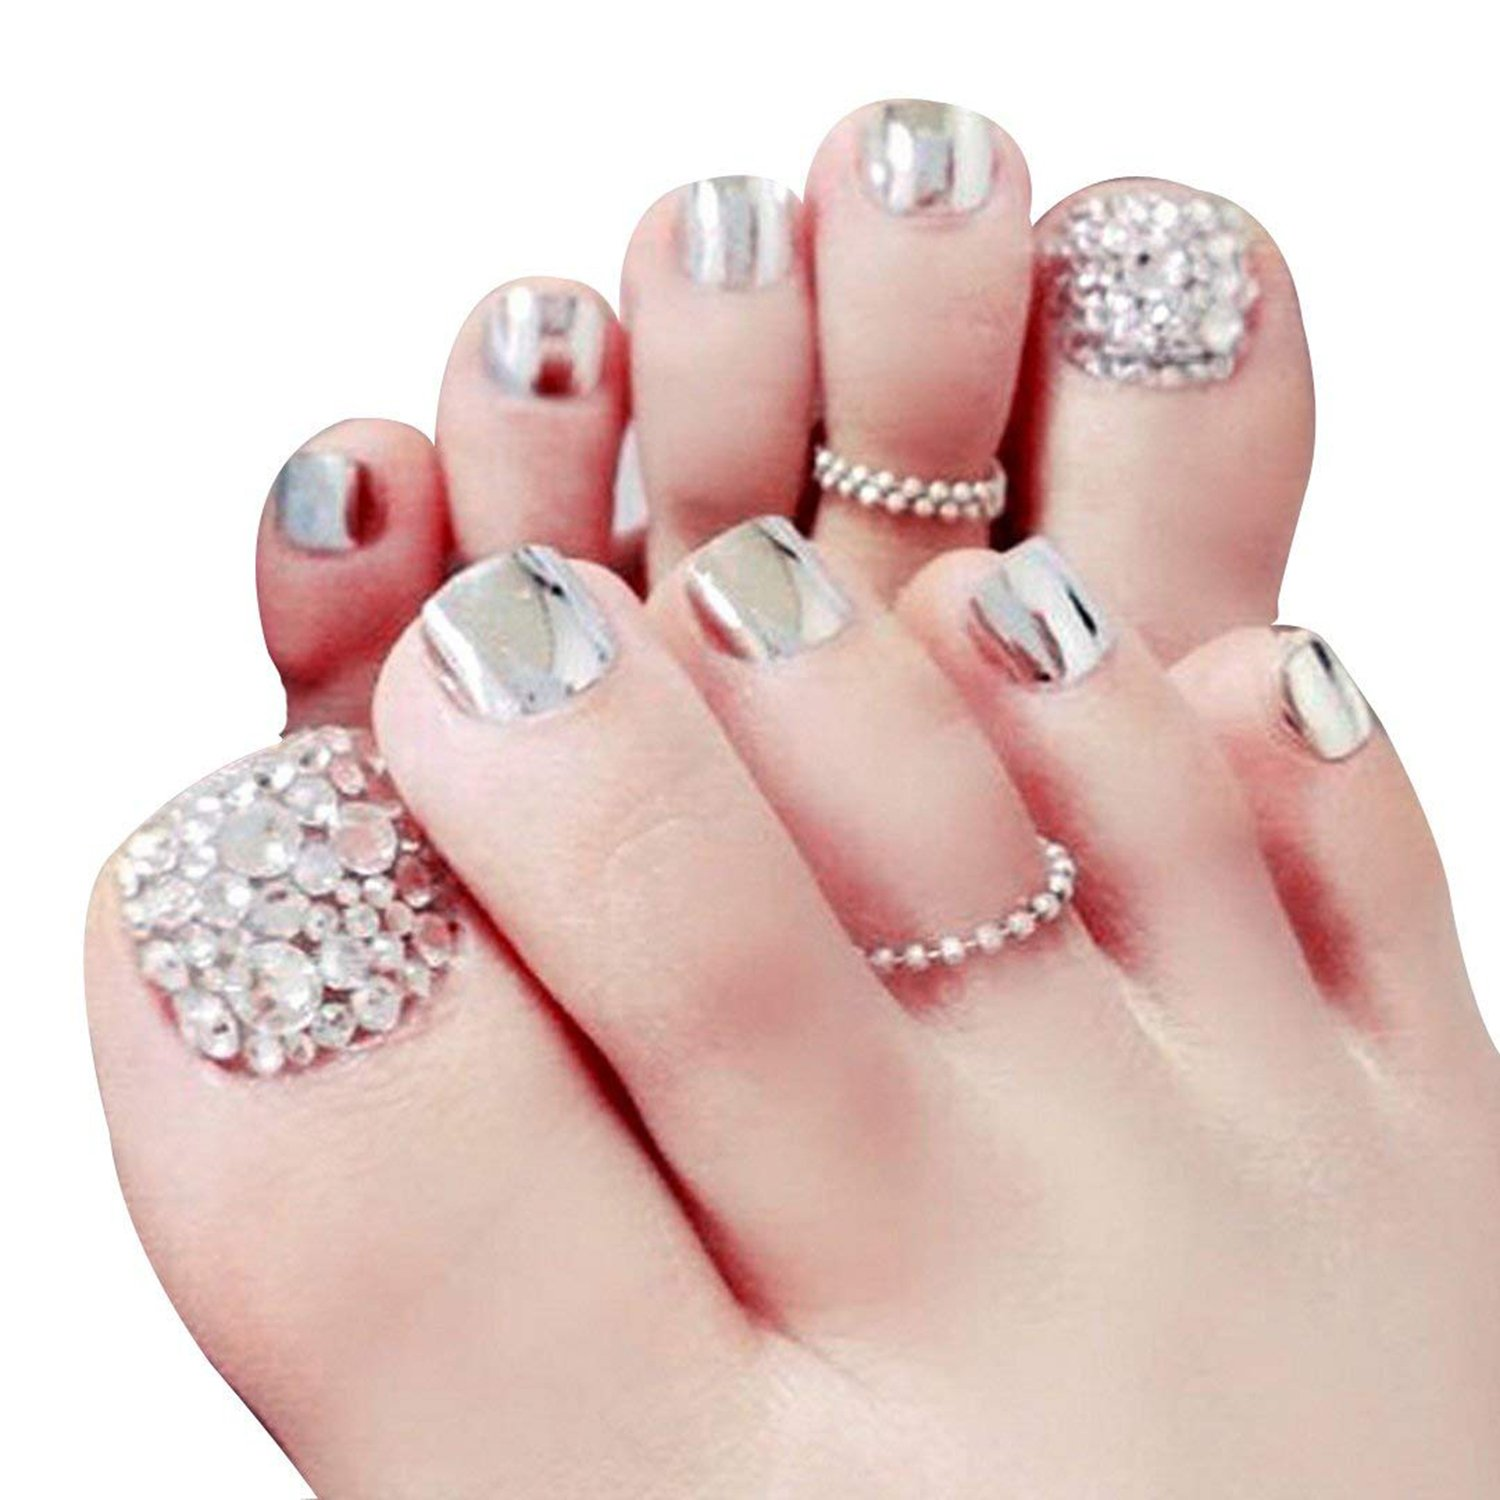 Amazon.com : 24pcs Brilliant Red False Toe Nails Artificial Acrylic ...